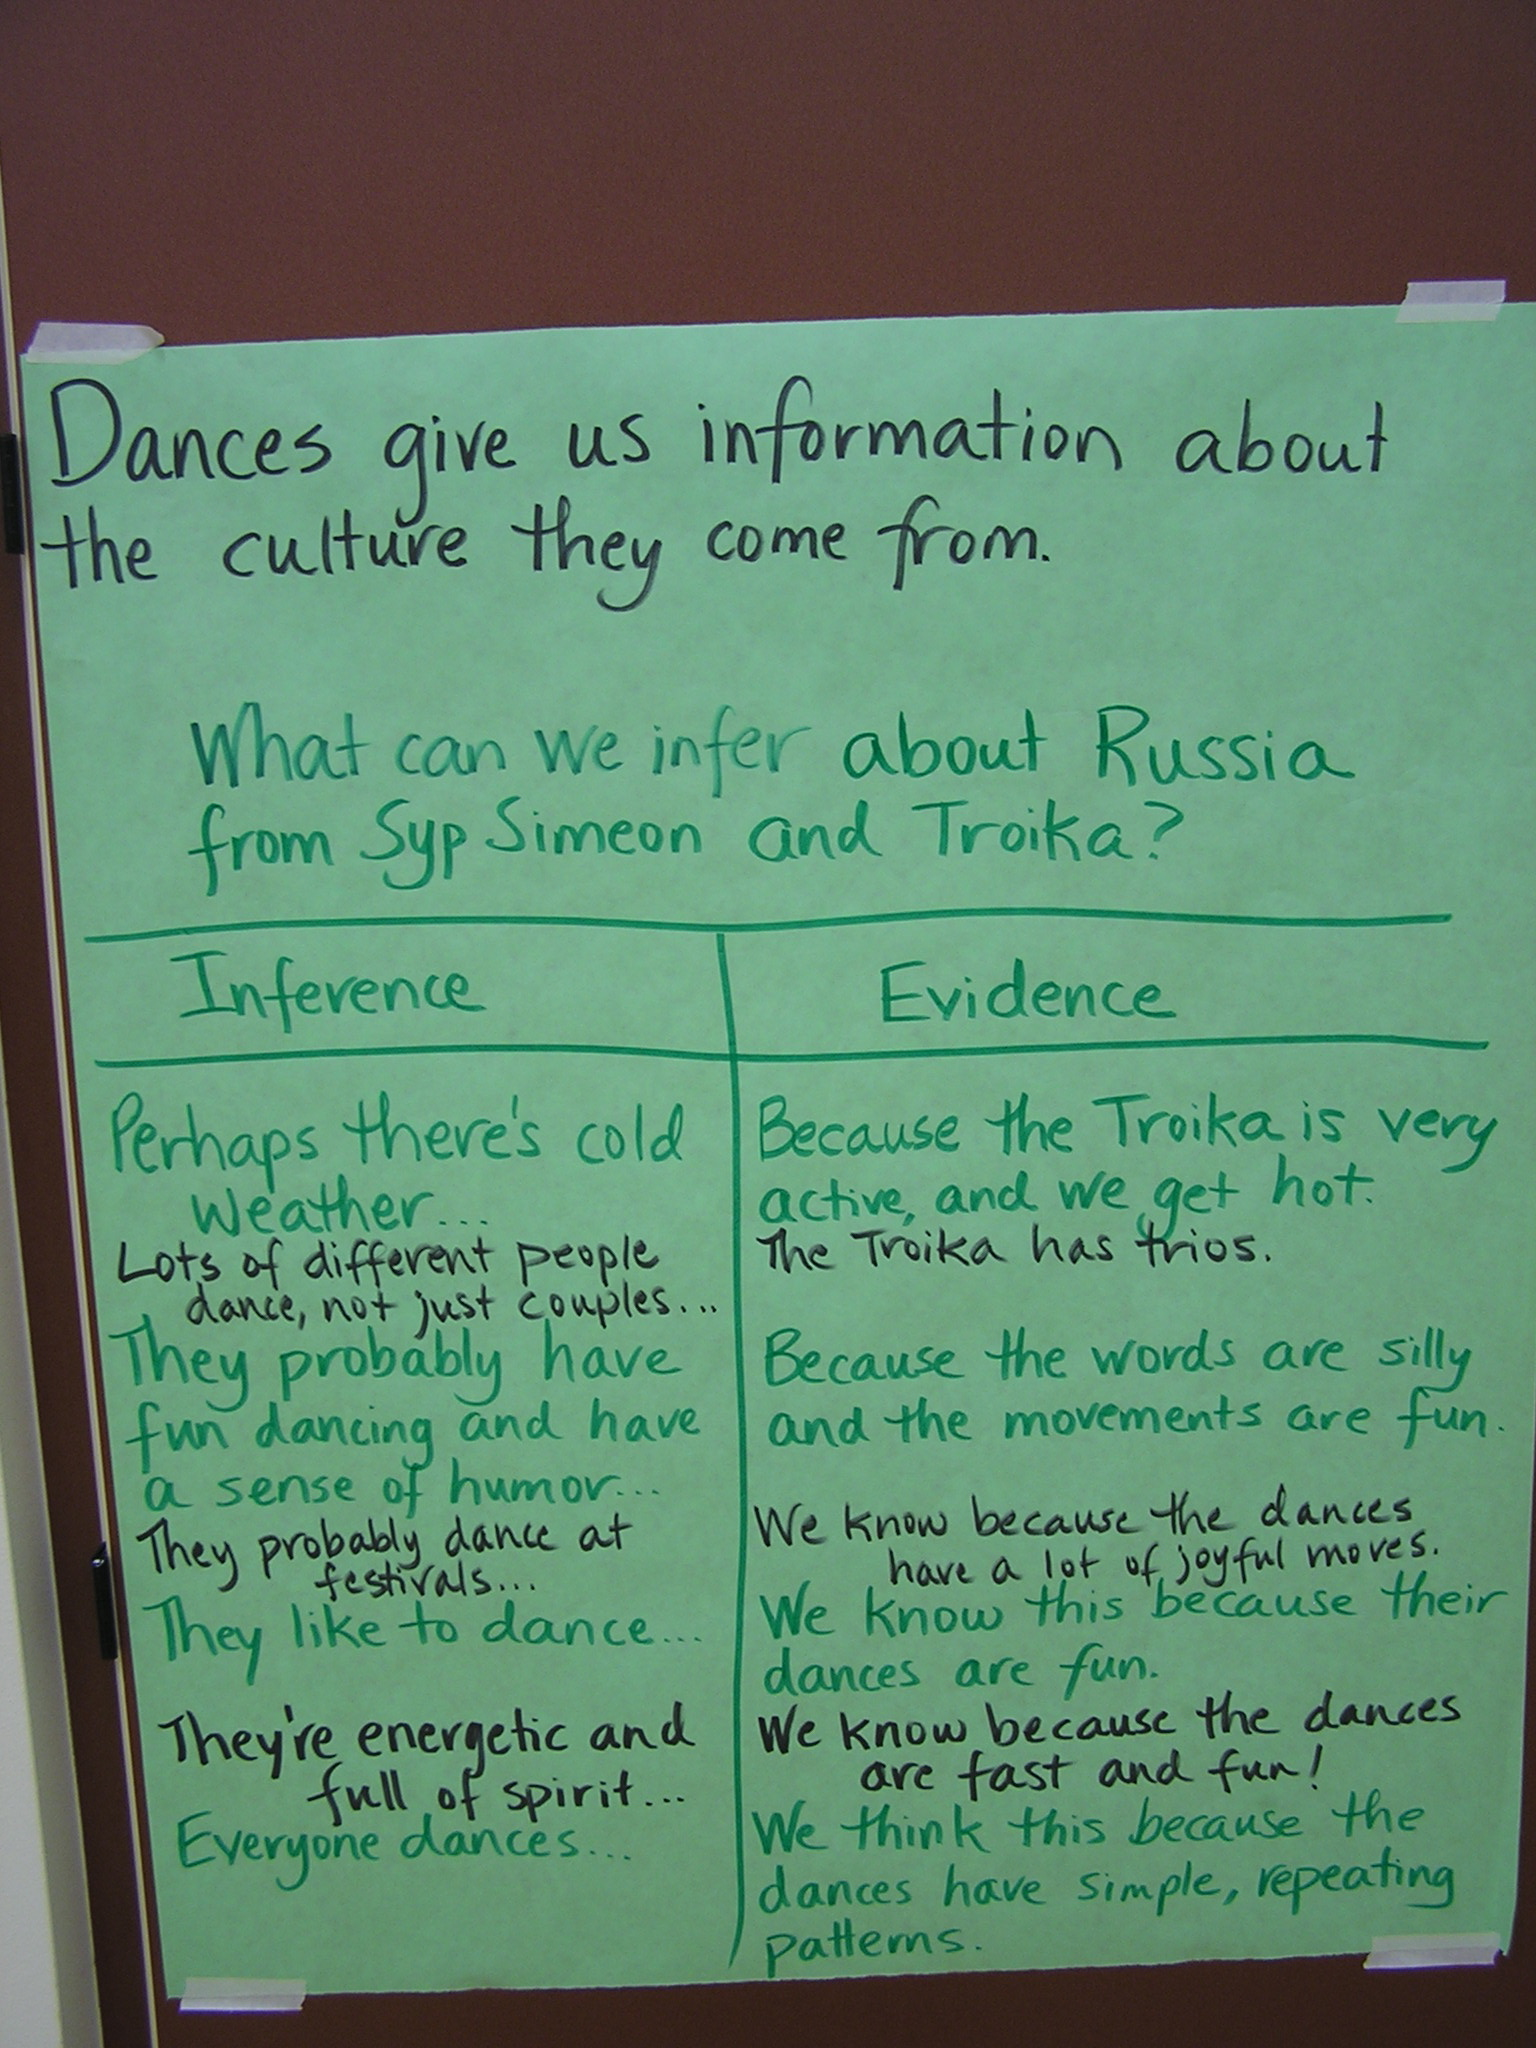 Inferences about Russian culture